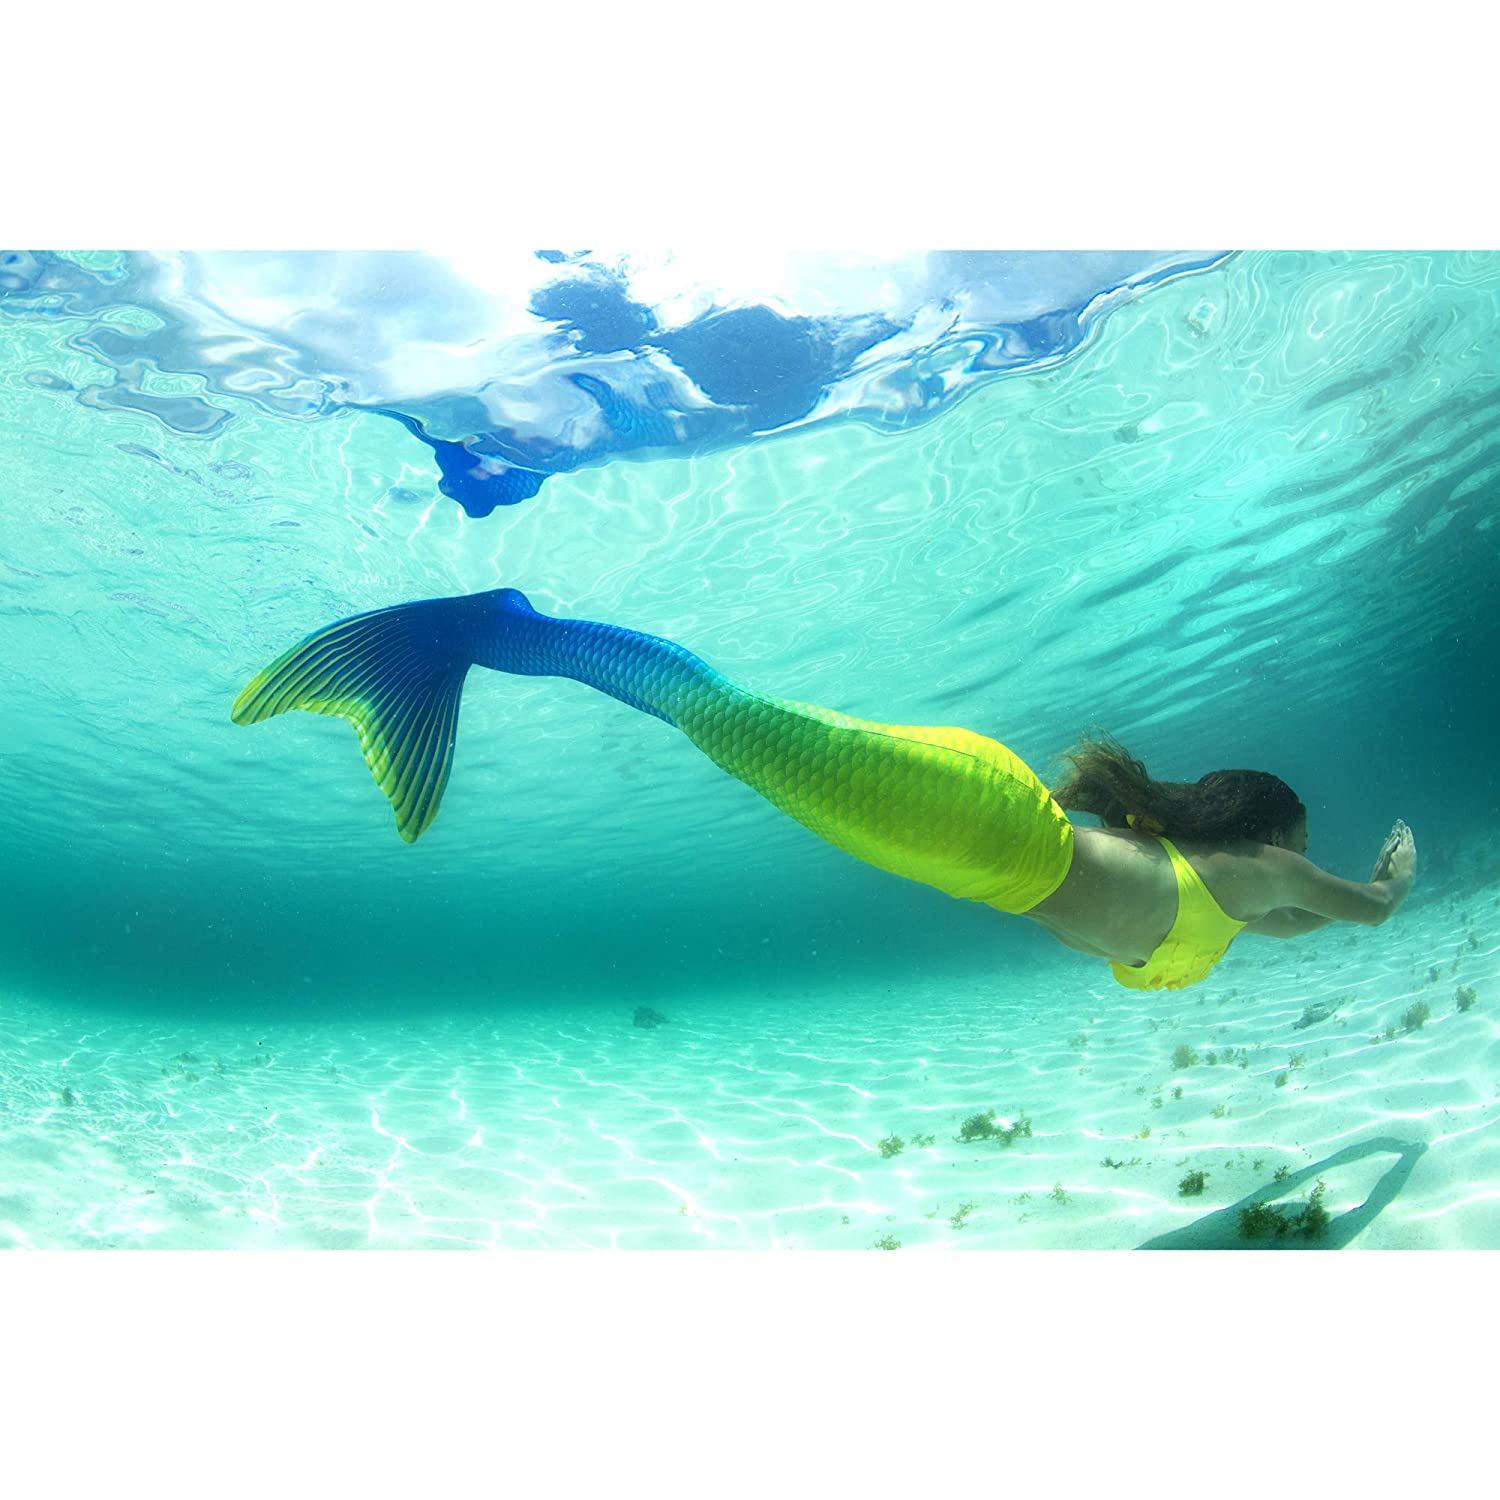 Reinforced Tips Child 12 Bali Breeze Fin Fun Mermaid Tail Only NO Monofin